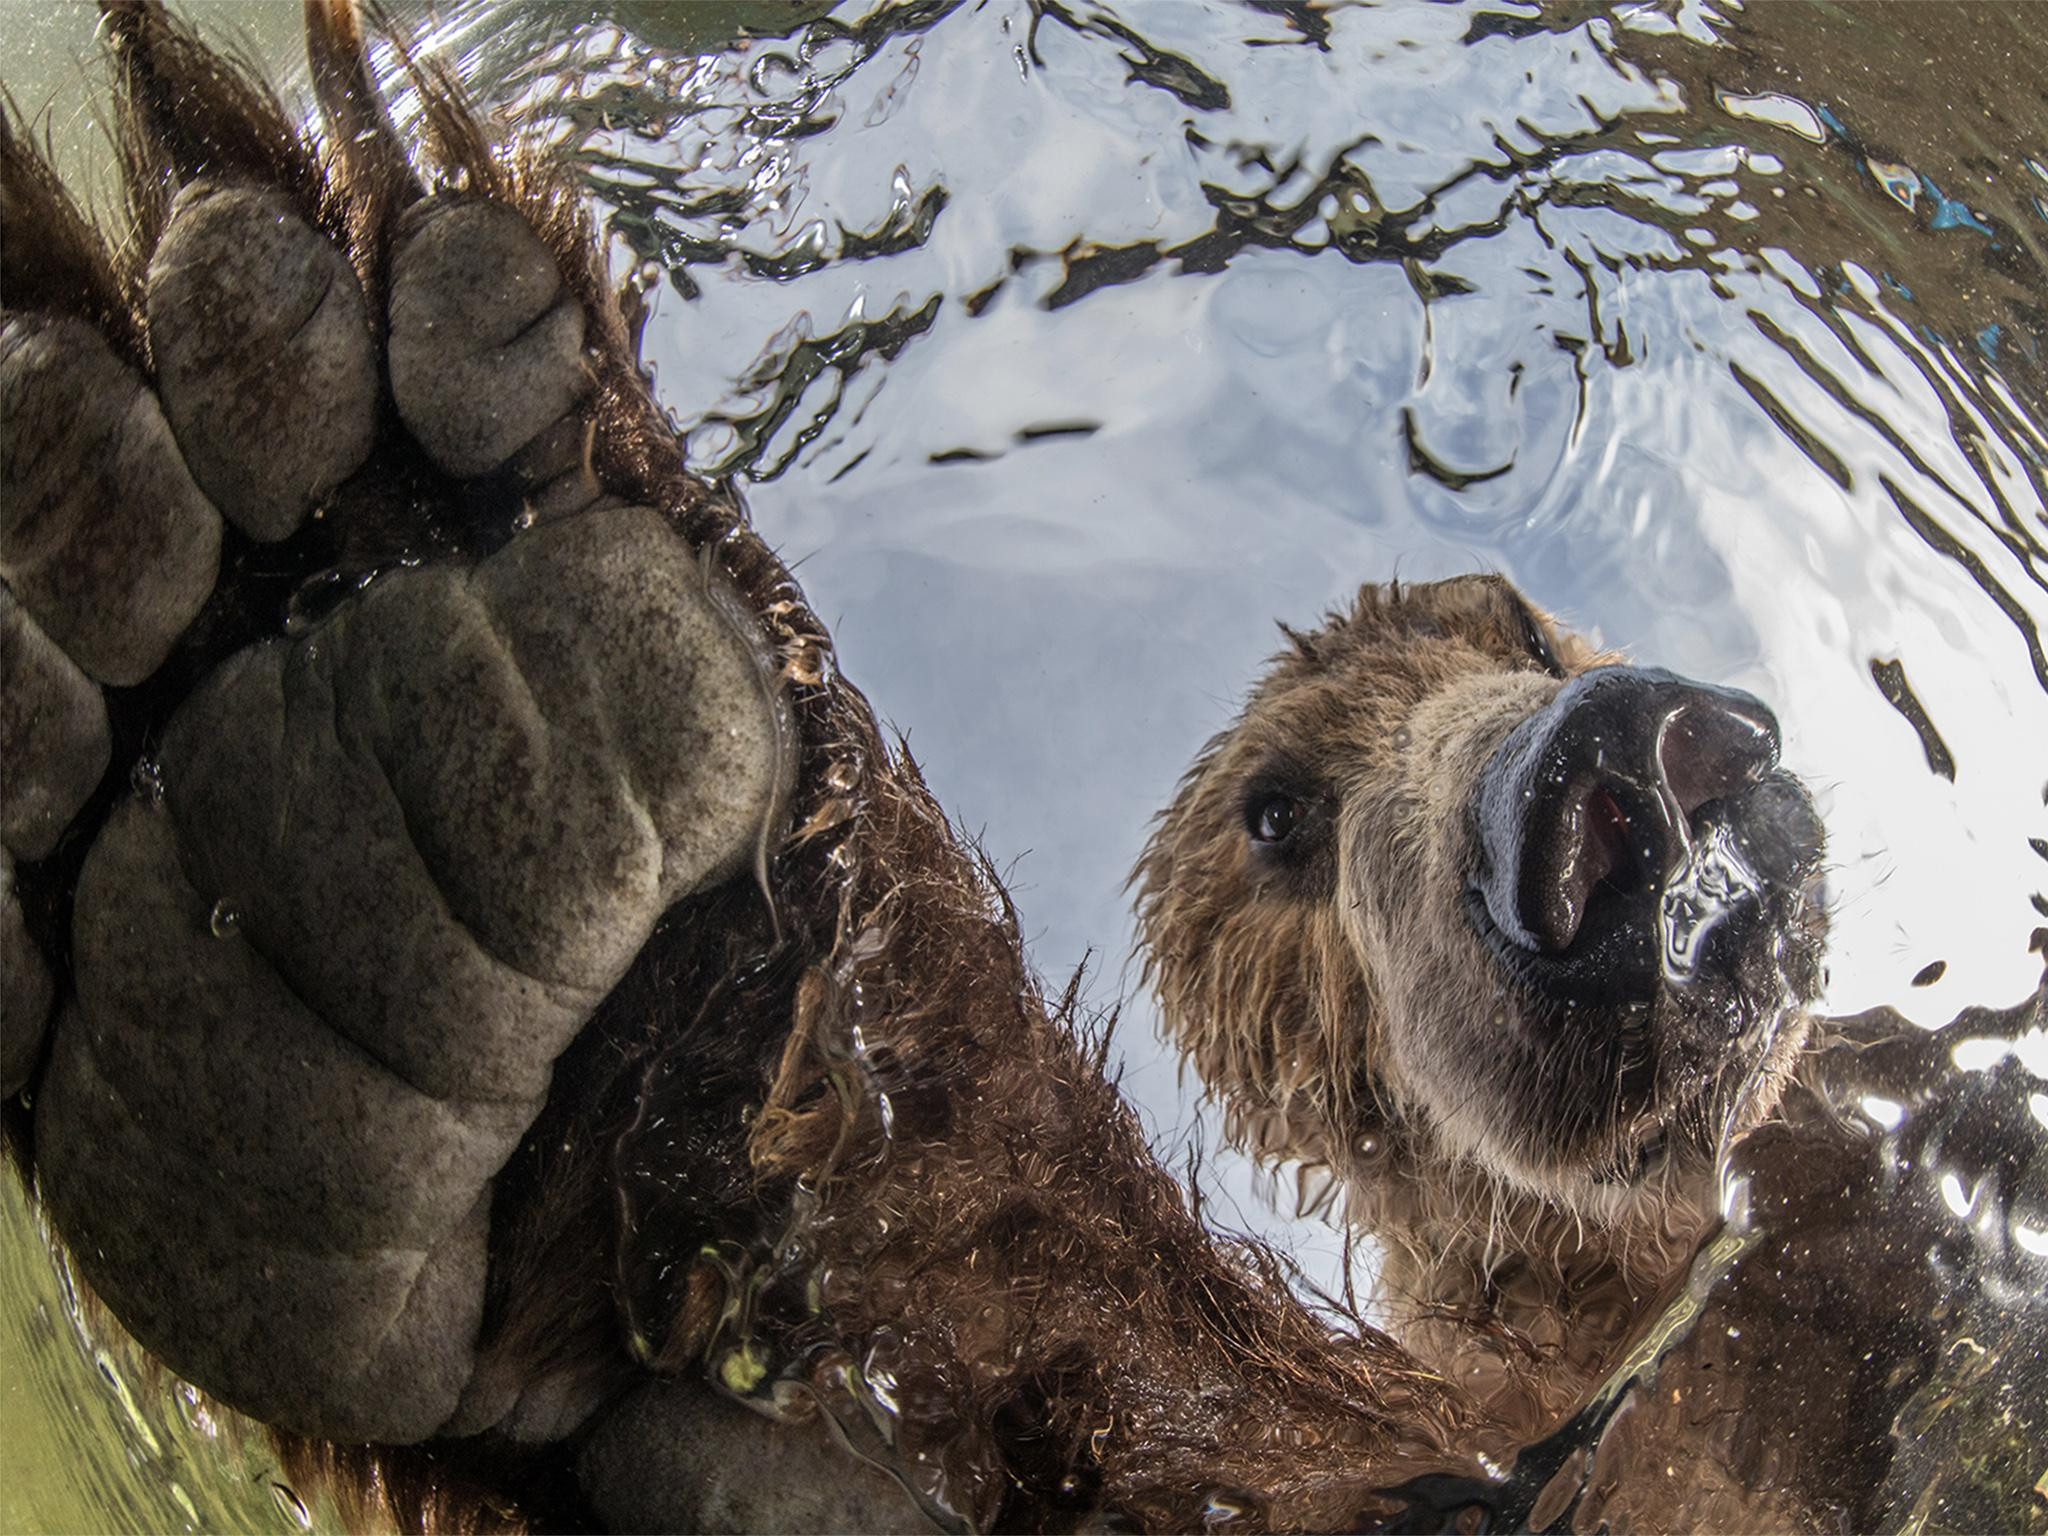 Fishing brown bear picture among winners of nature photography contest